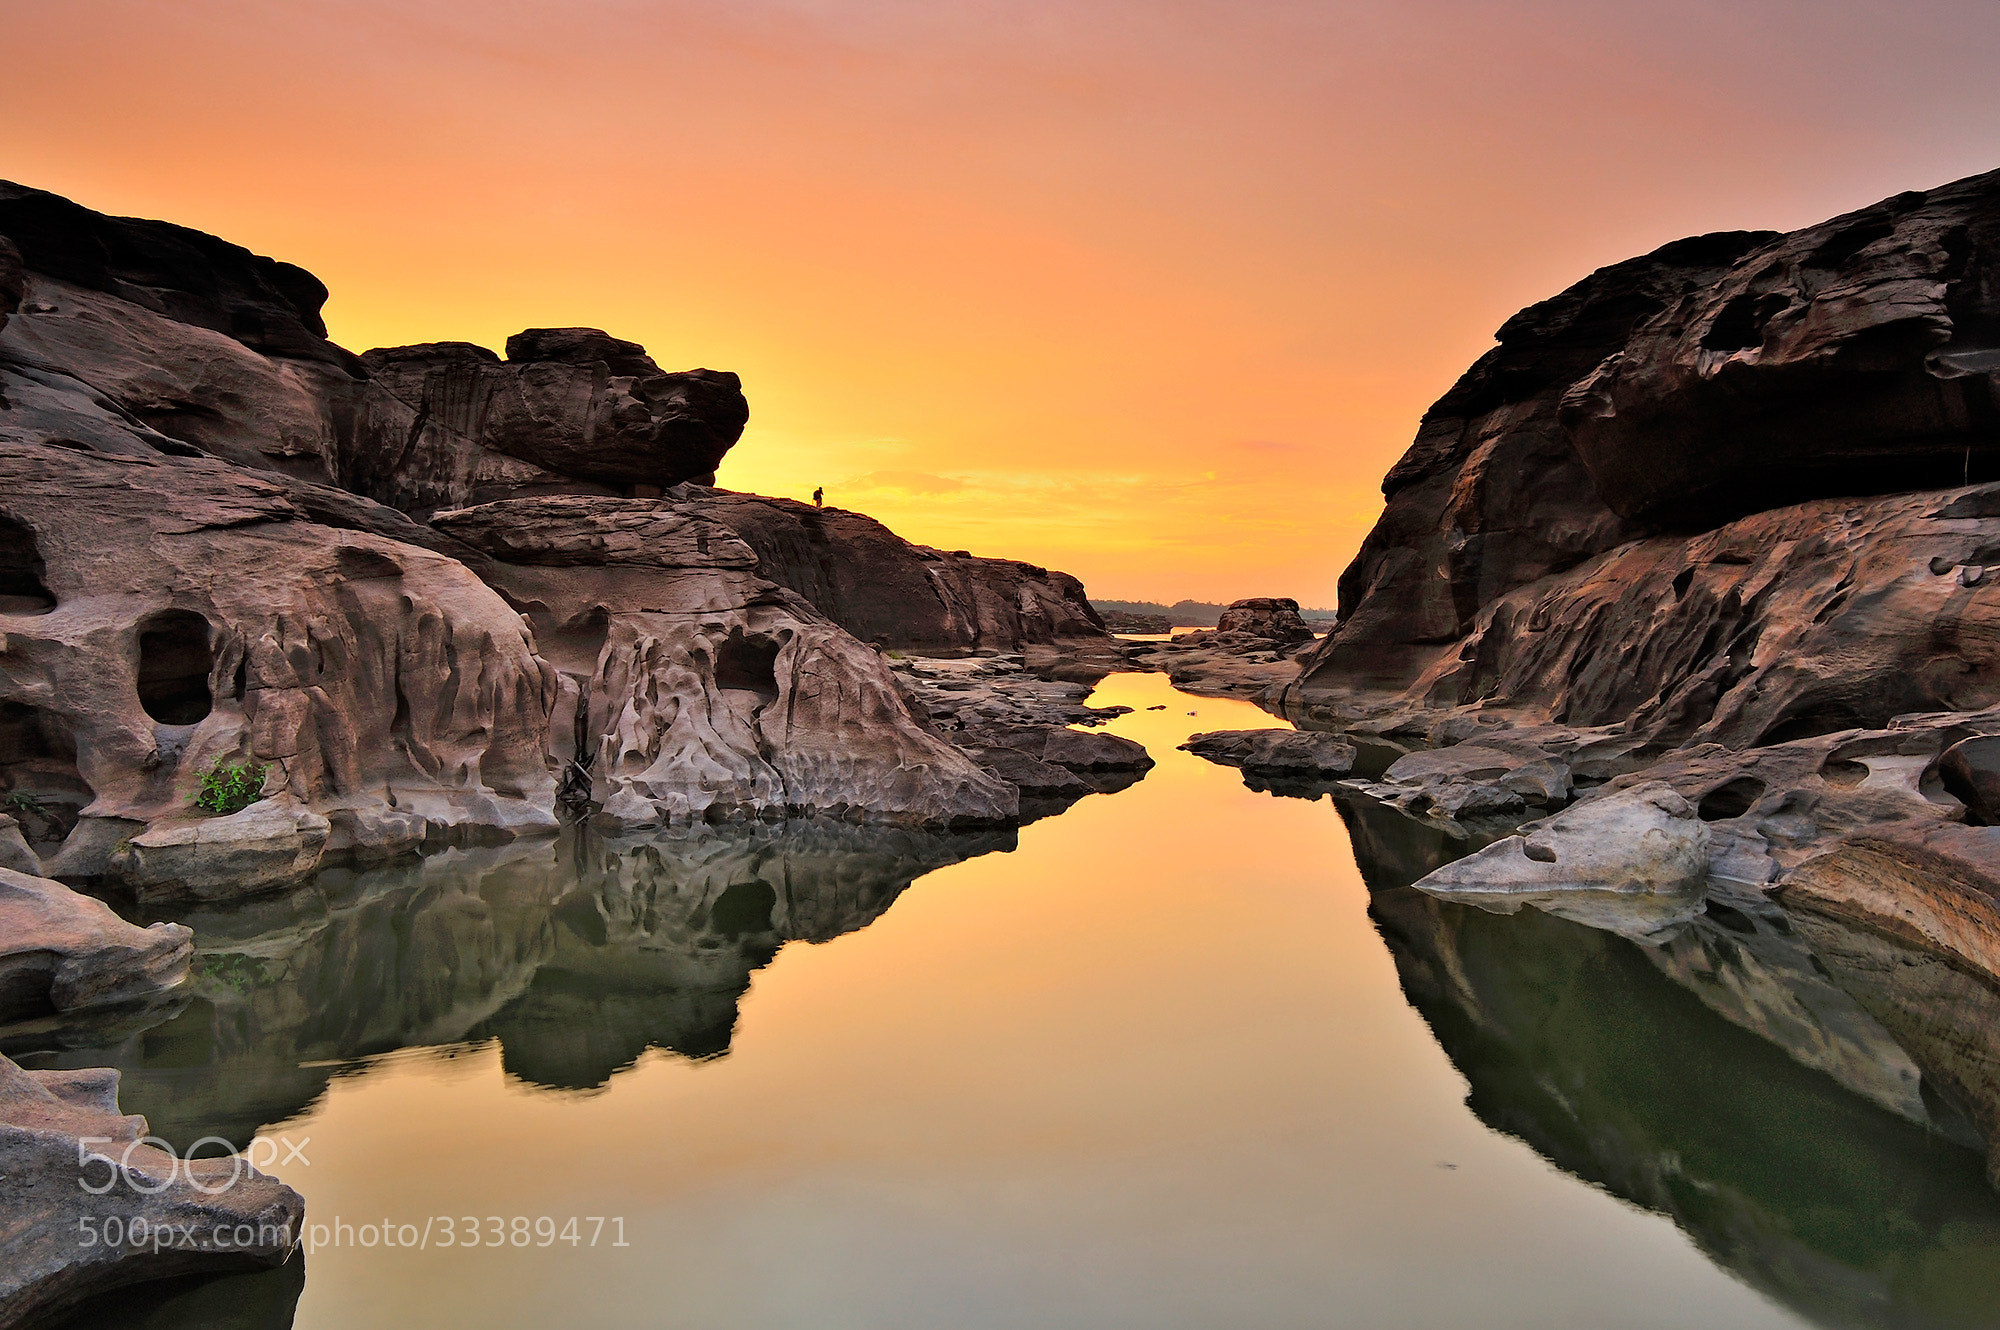 Photograph Good evening 3000 bok by Puchong Pannoi on 500px